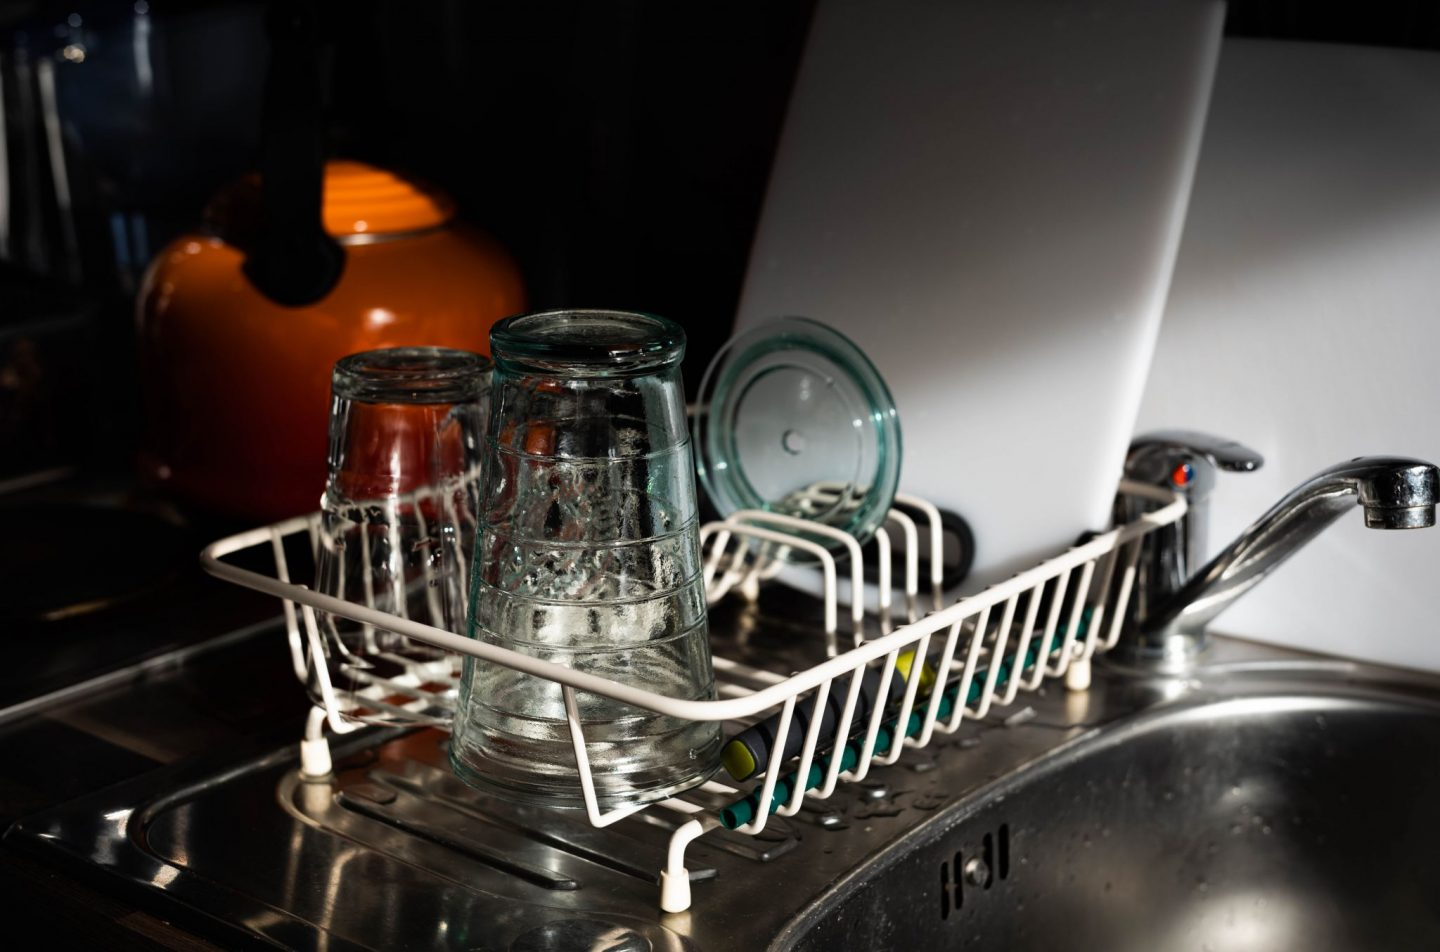 ESSENTIAL THINGS TO CONSIDER WHEN BUYING A DISHWASHER